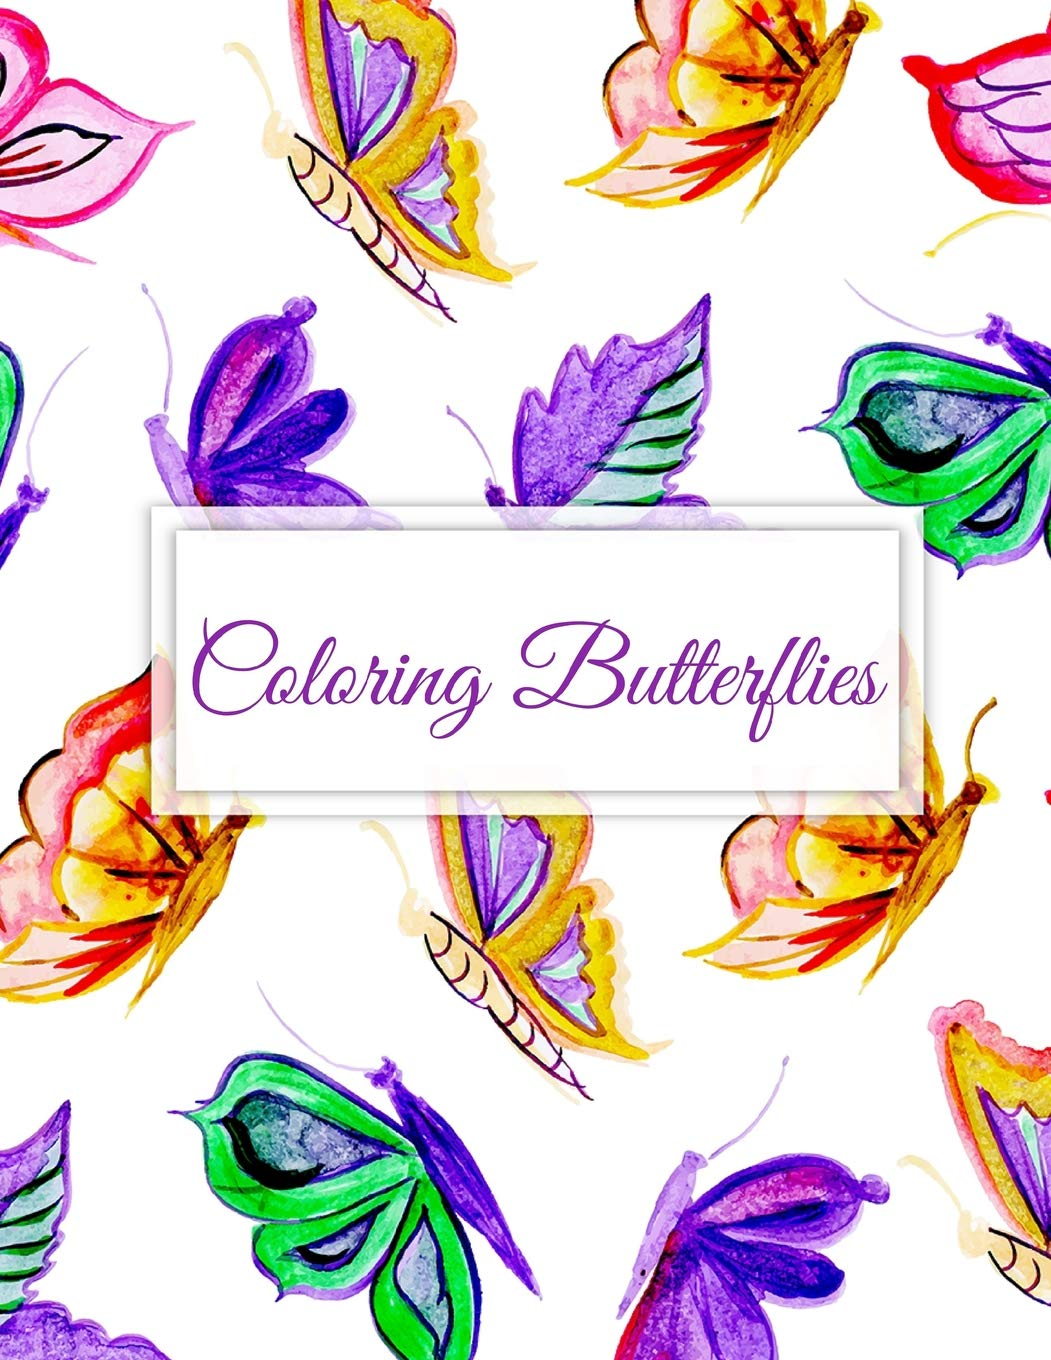 Coloring Butterflies  A Lovely Stress Relieving Adult Coloring Book For Relaxation Therapy And Inspiration With Easy Beautiful Magical Butterfly ... And Patterns In Colorful Purple Gold Theme